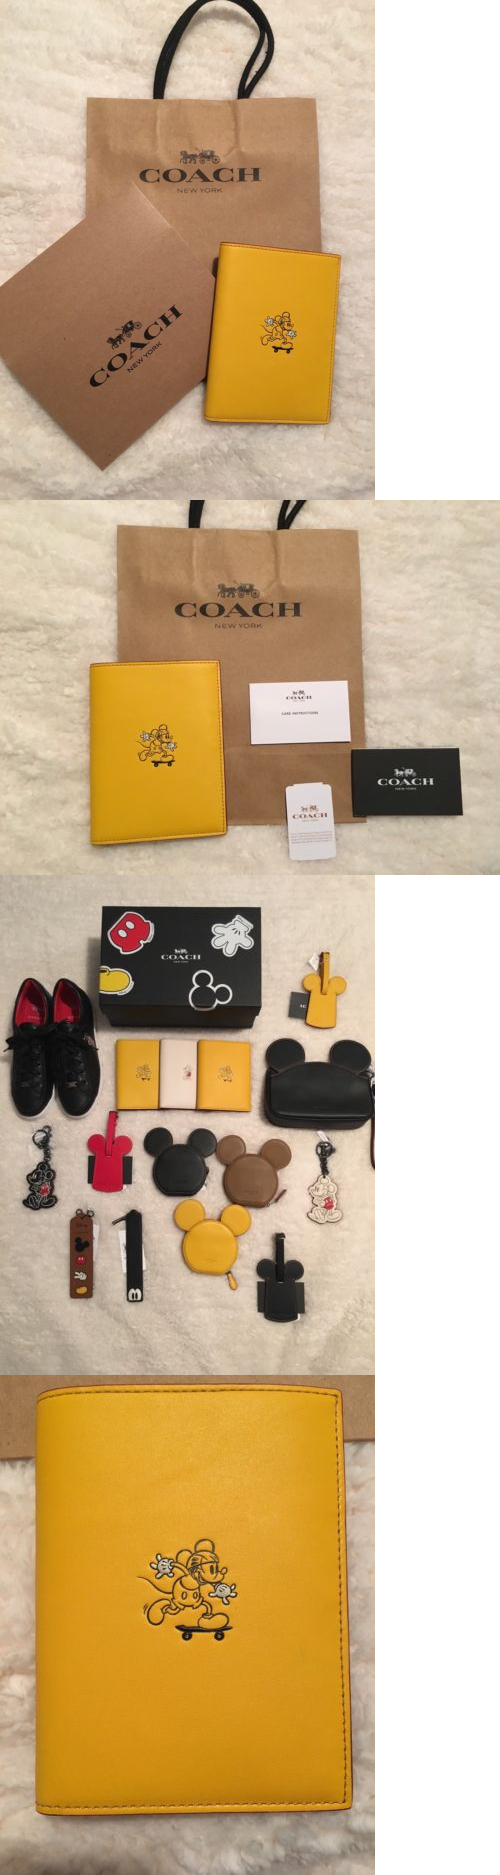 Passport Holders 169288: Nwt Coach Mickey Passport Case In Glove Calf Leather-Banana (Yellow) Limited Edi -> BUY IT NOW ONLY: $135 on eBay!